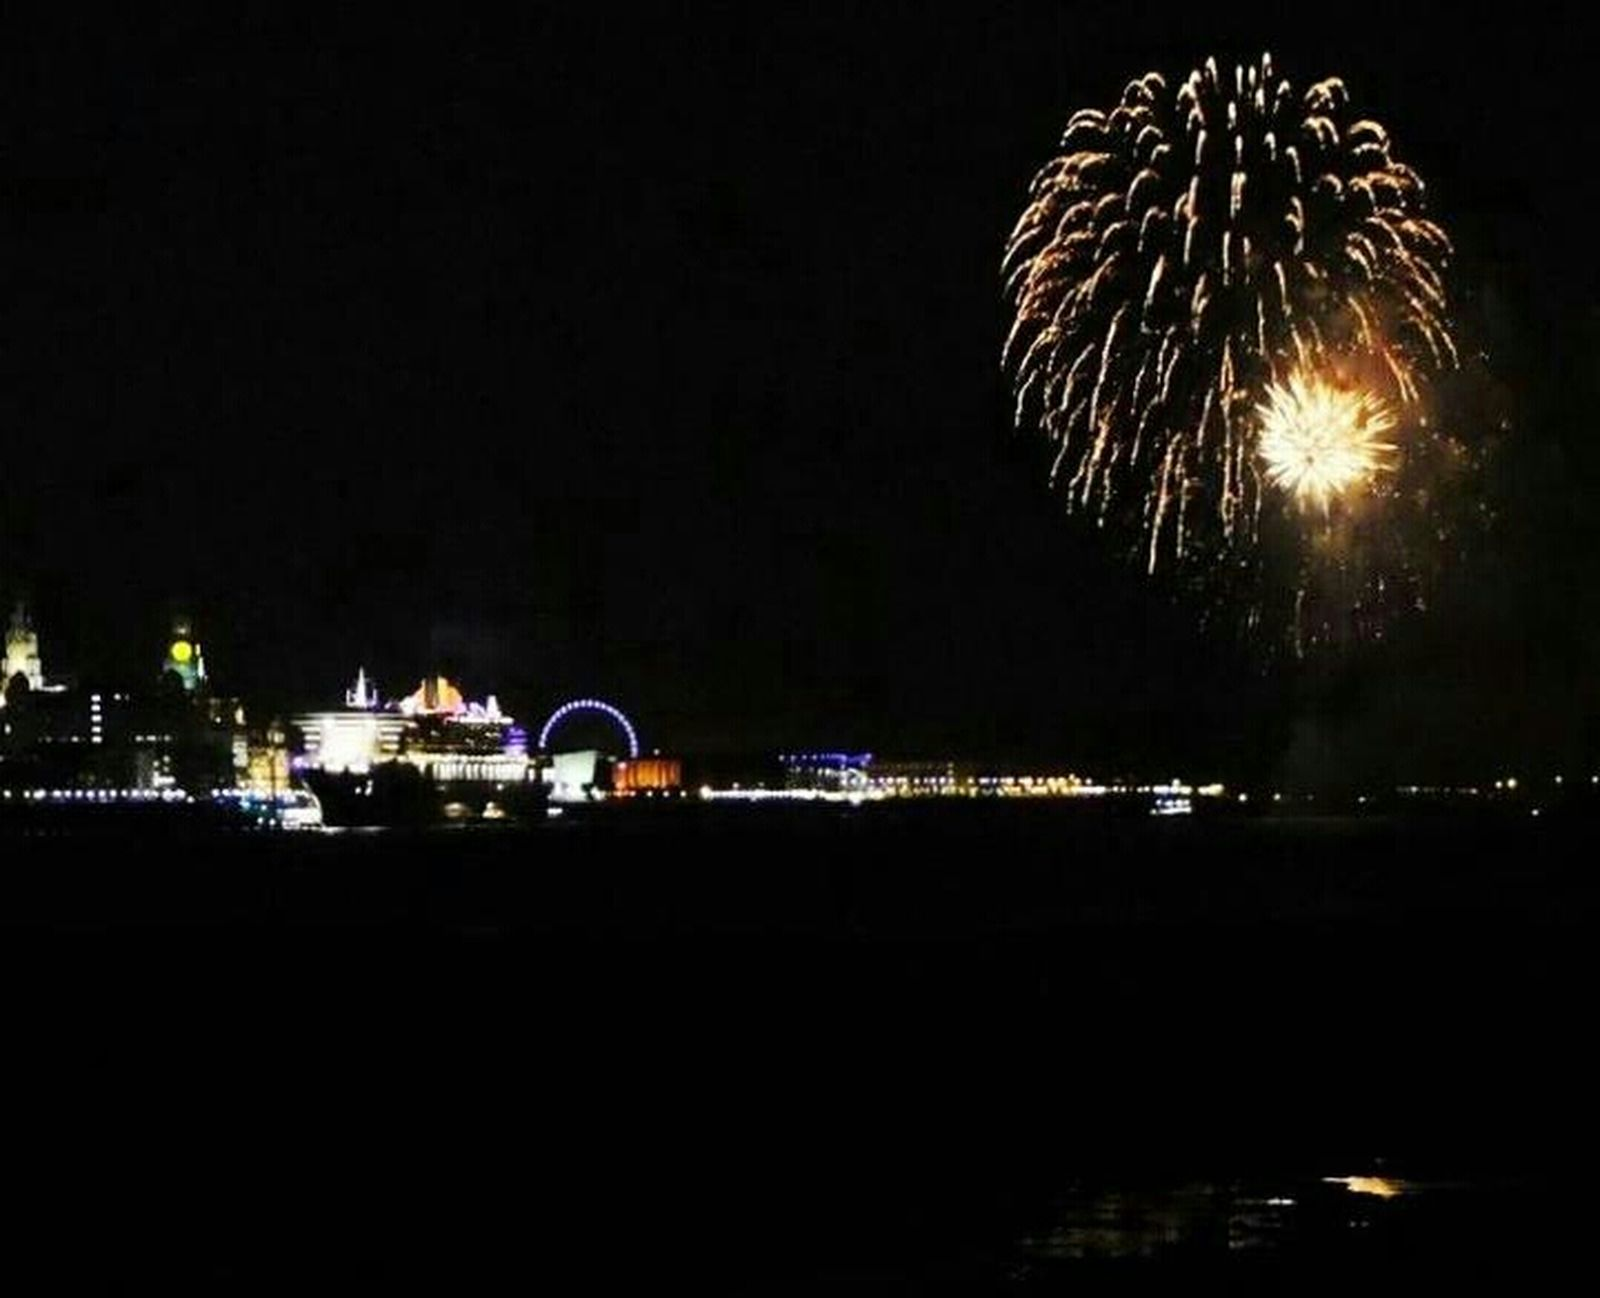 Cruise Ship Liverpool Boat In Fireworks Love Liverpool